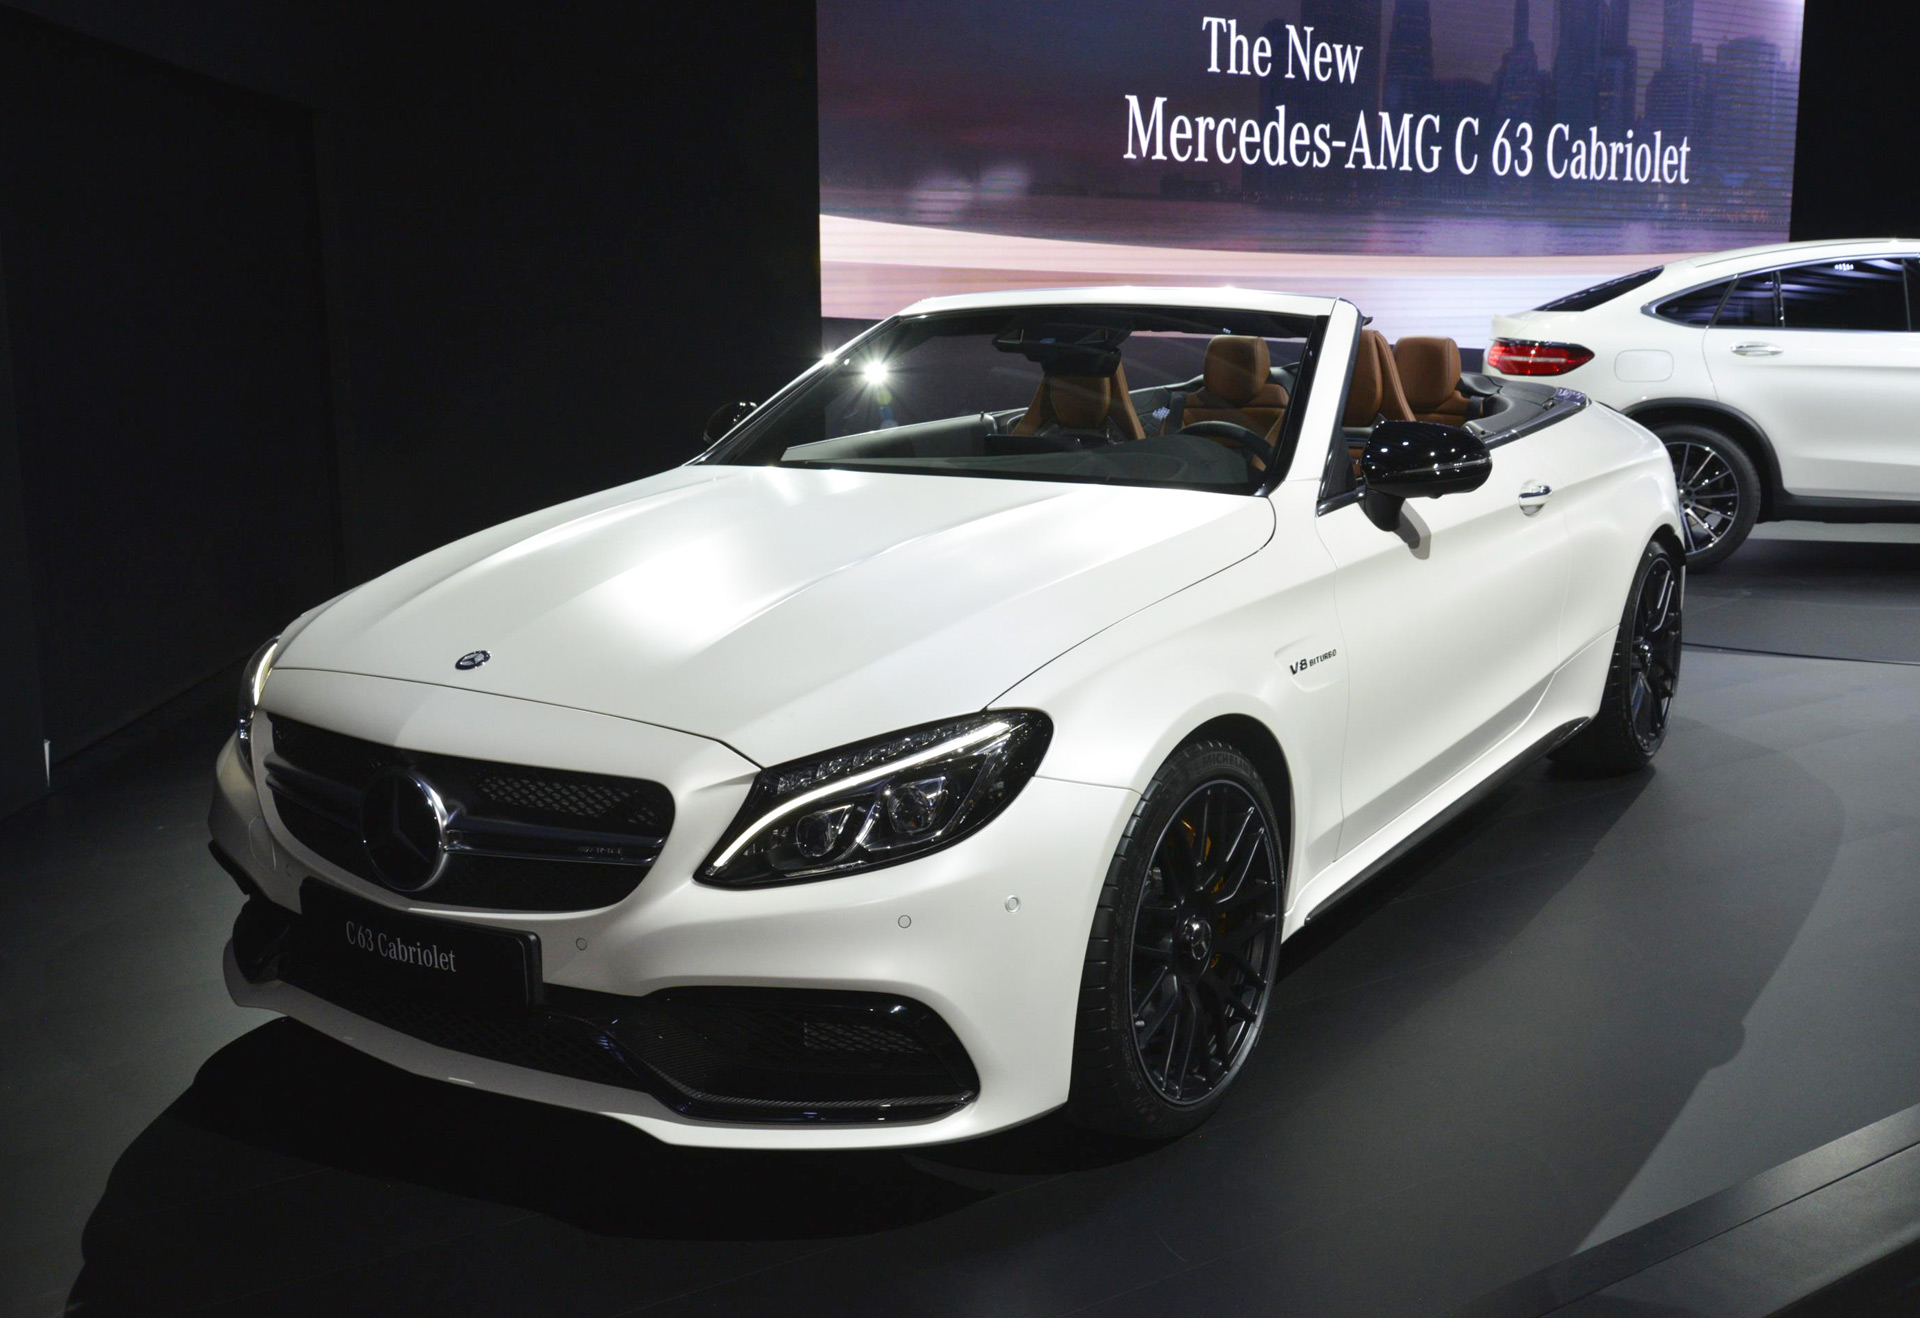 2017 Mercedes Amg C63 Cabriolet Debuts In New York Live Photos And Video